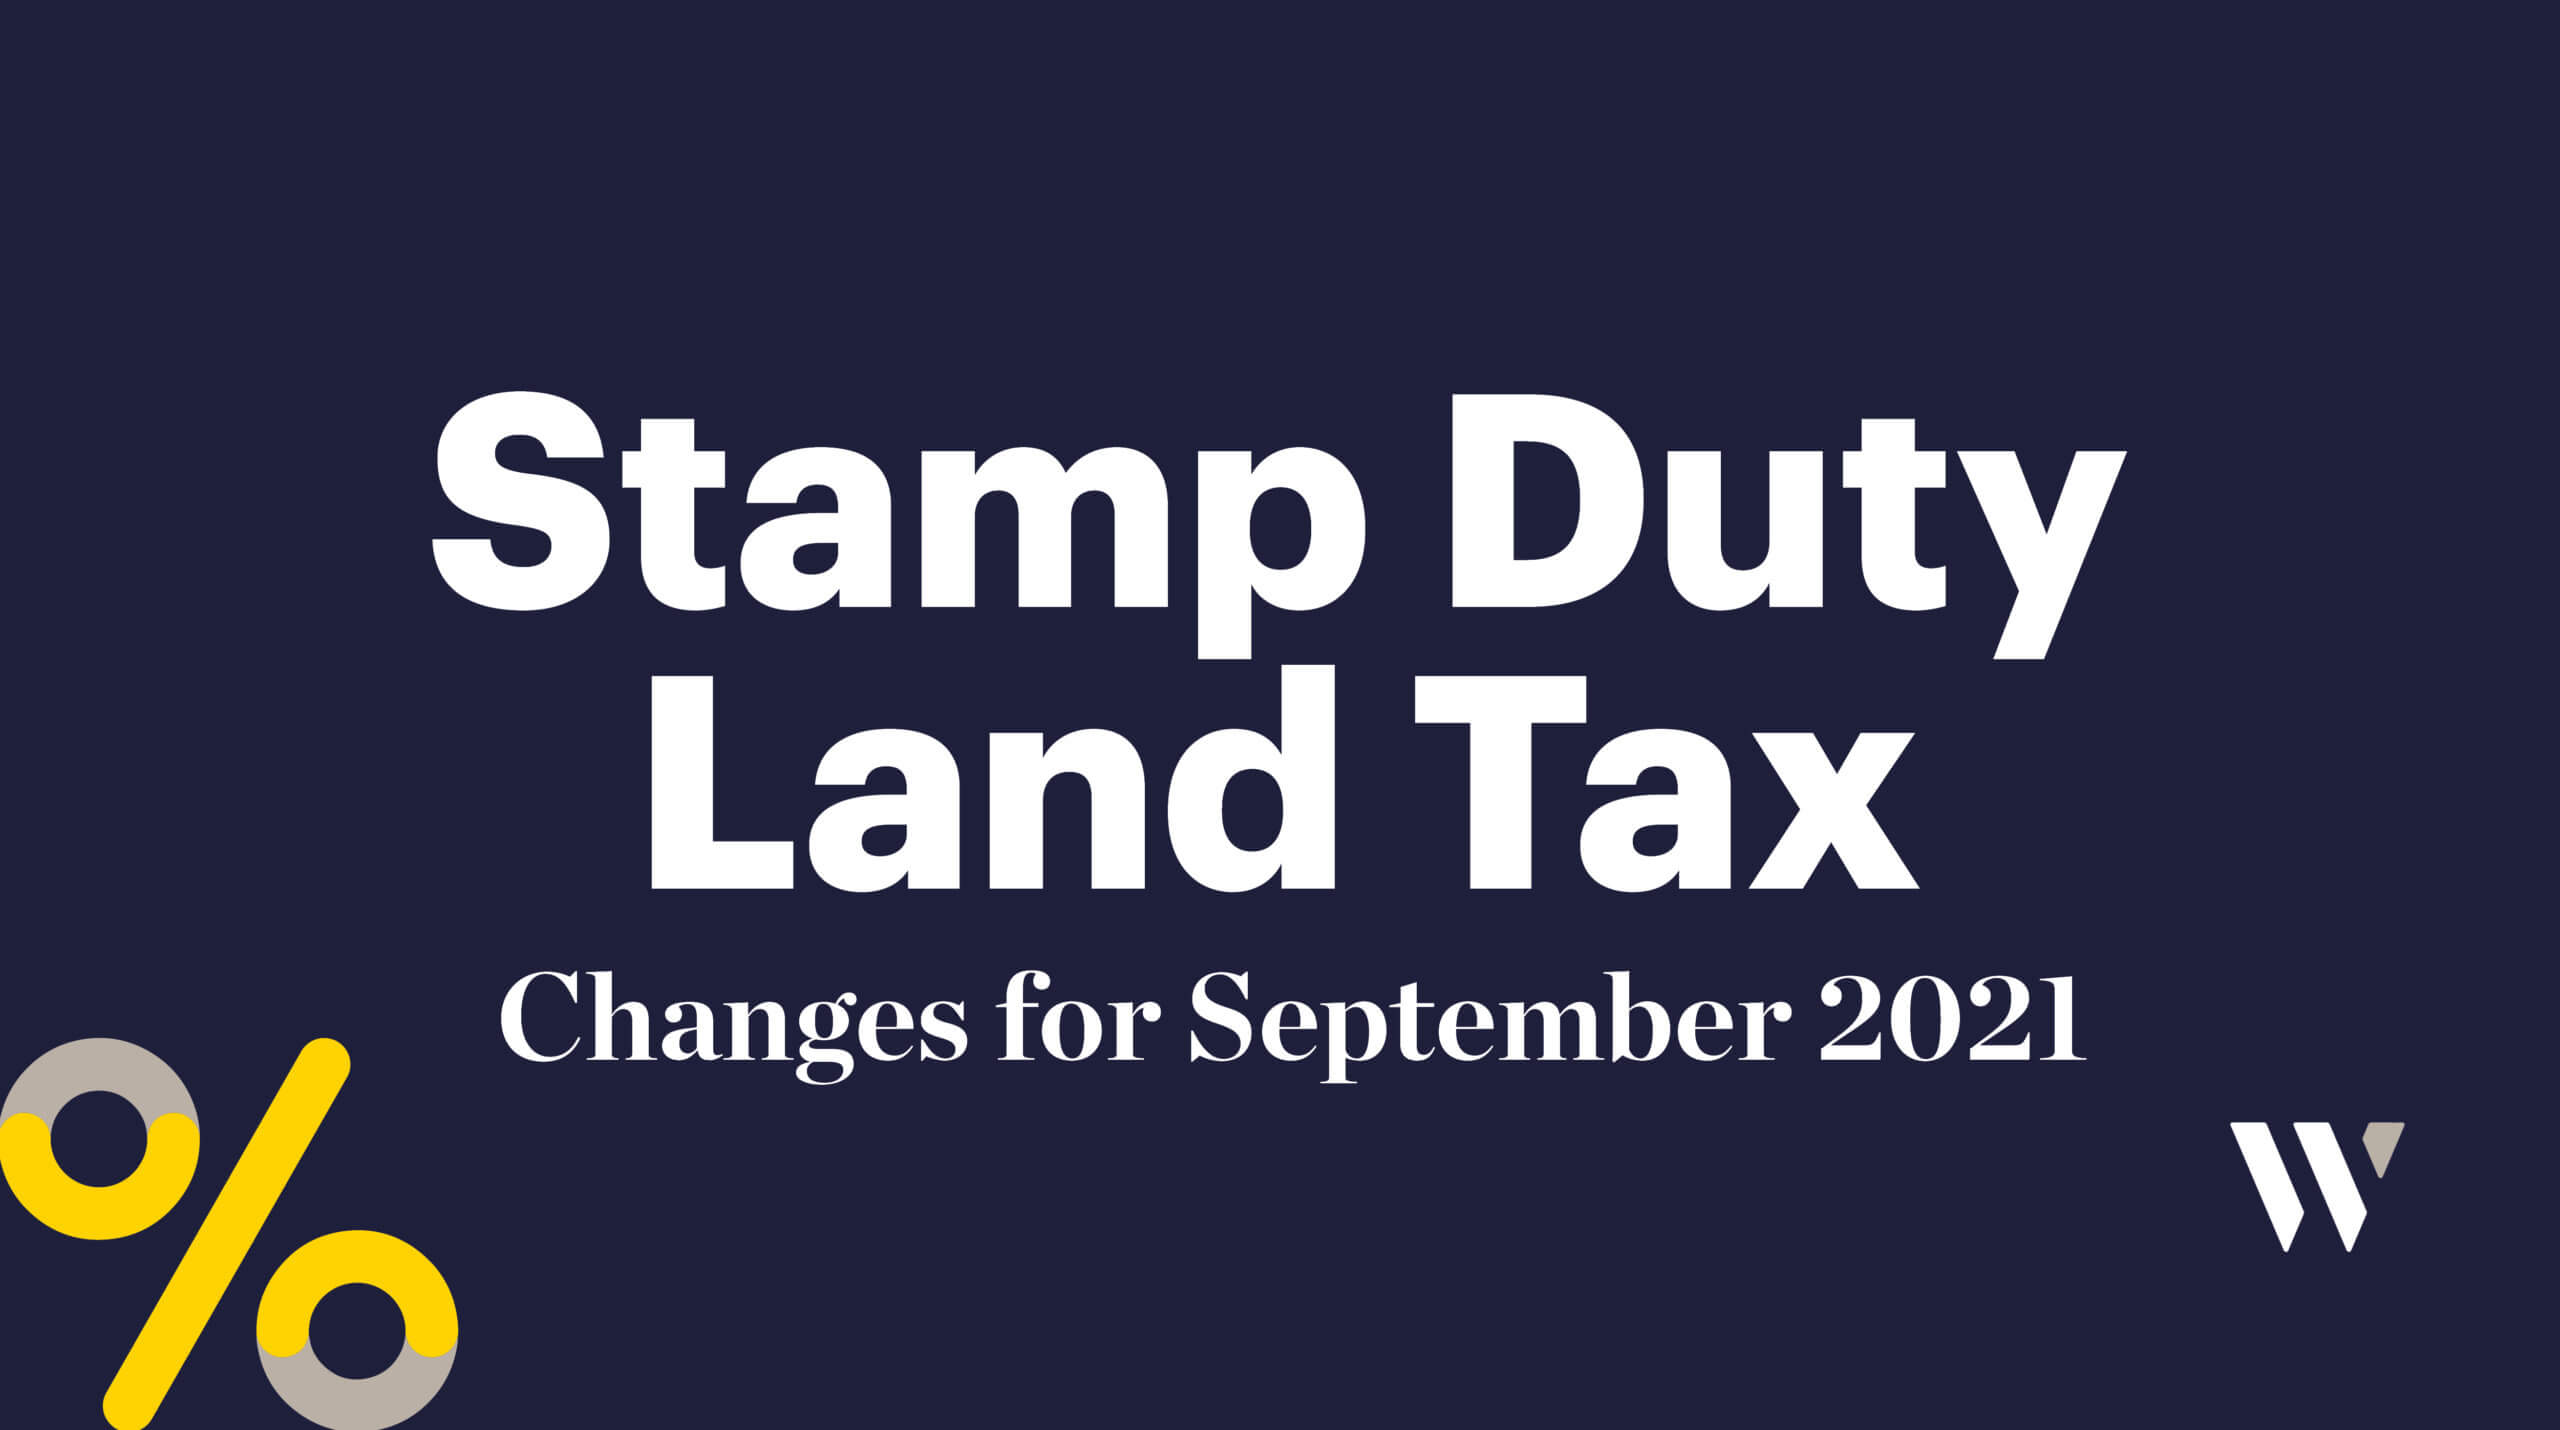 Stamp Duty Land Tax Changes for September